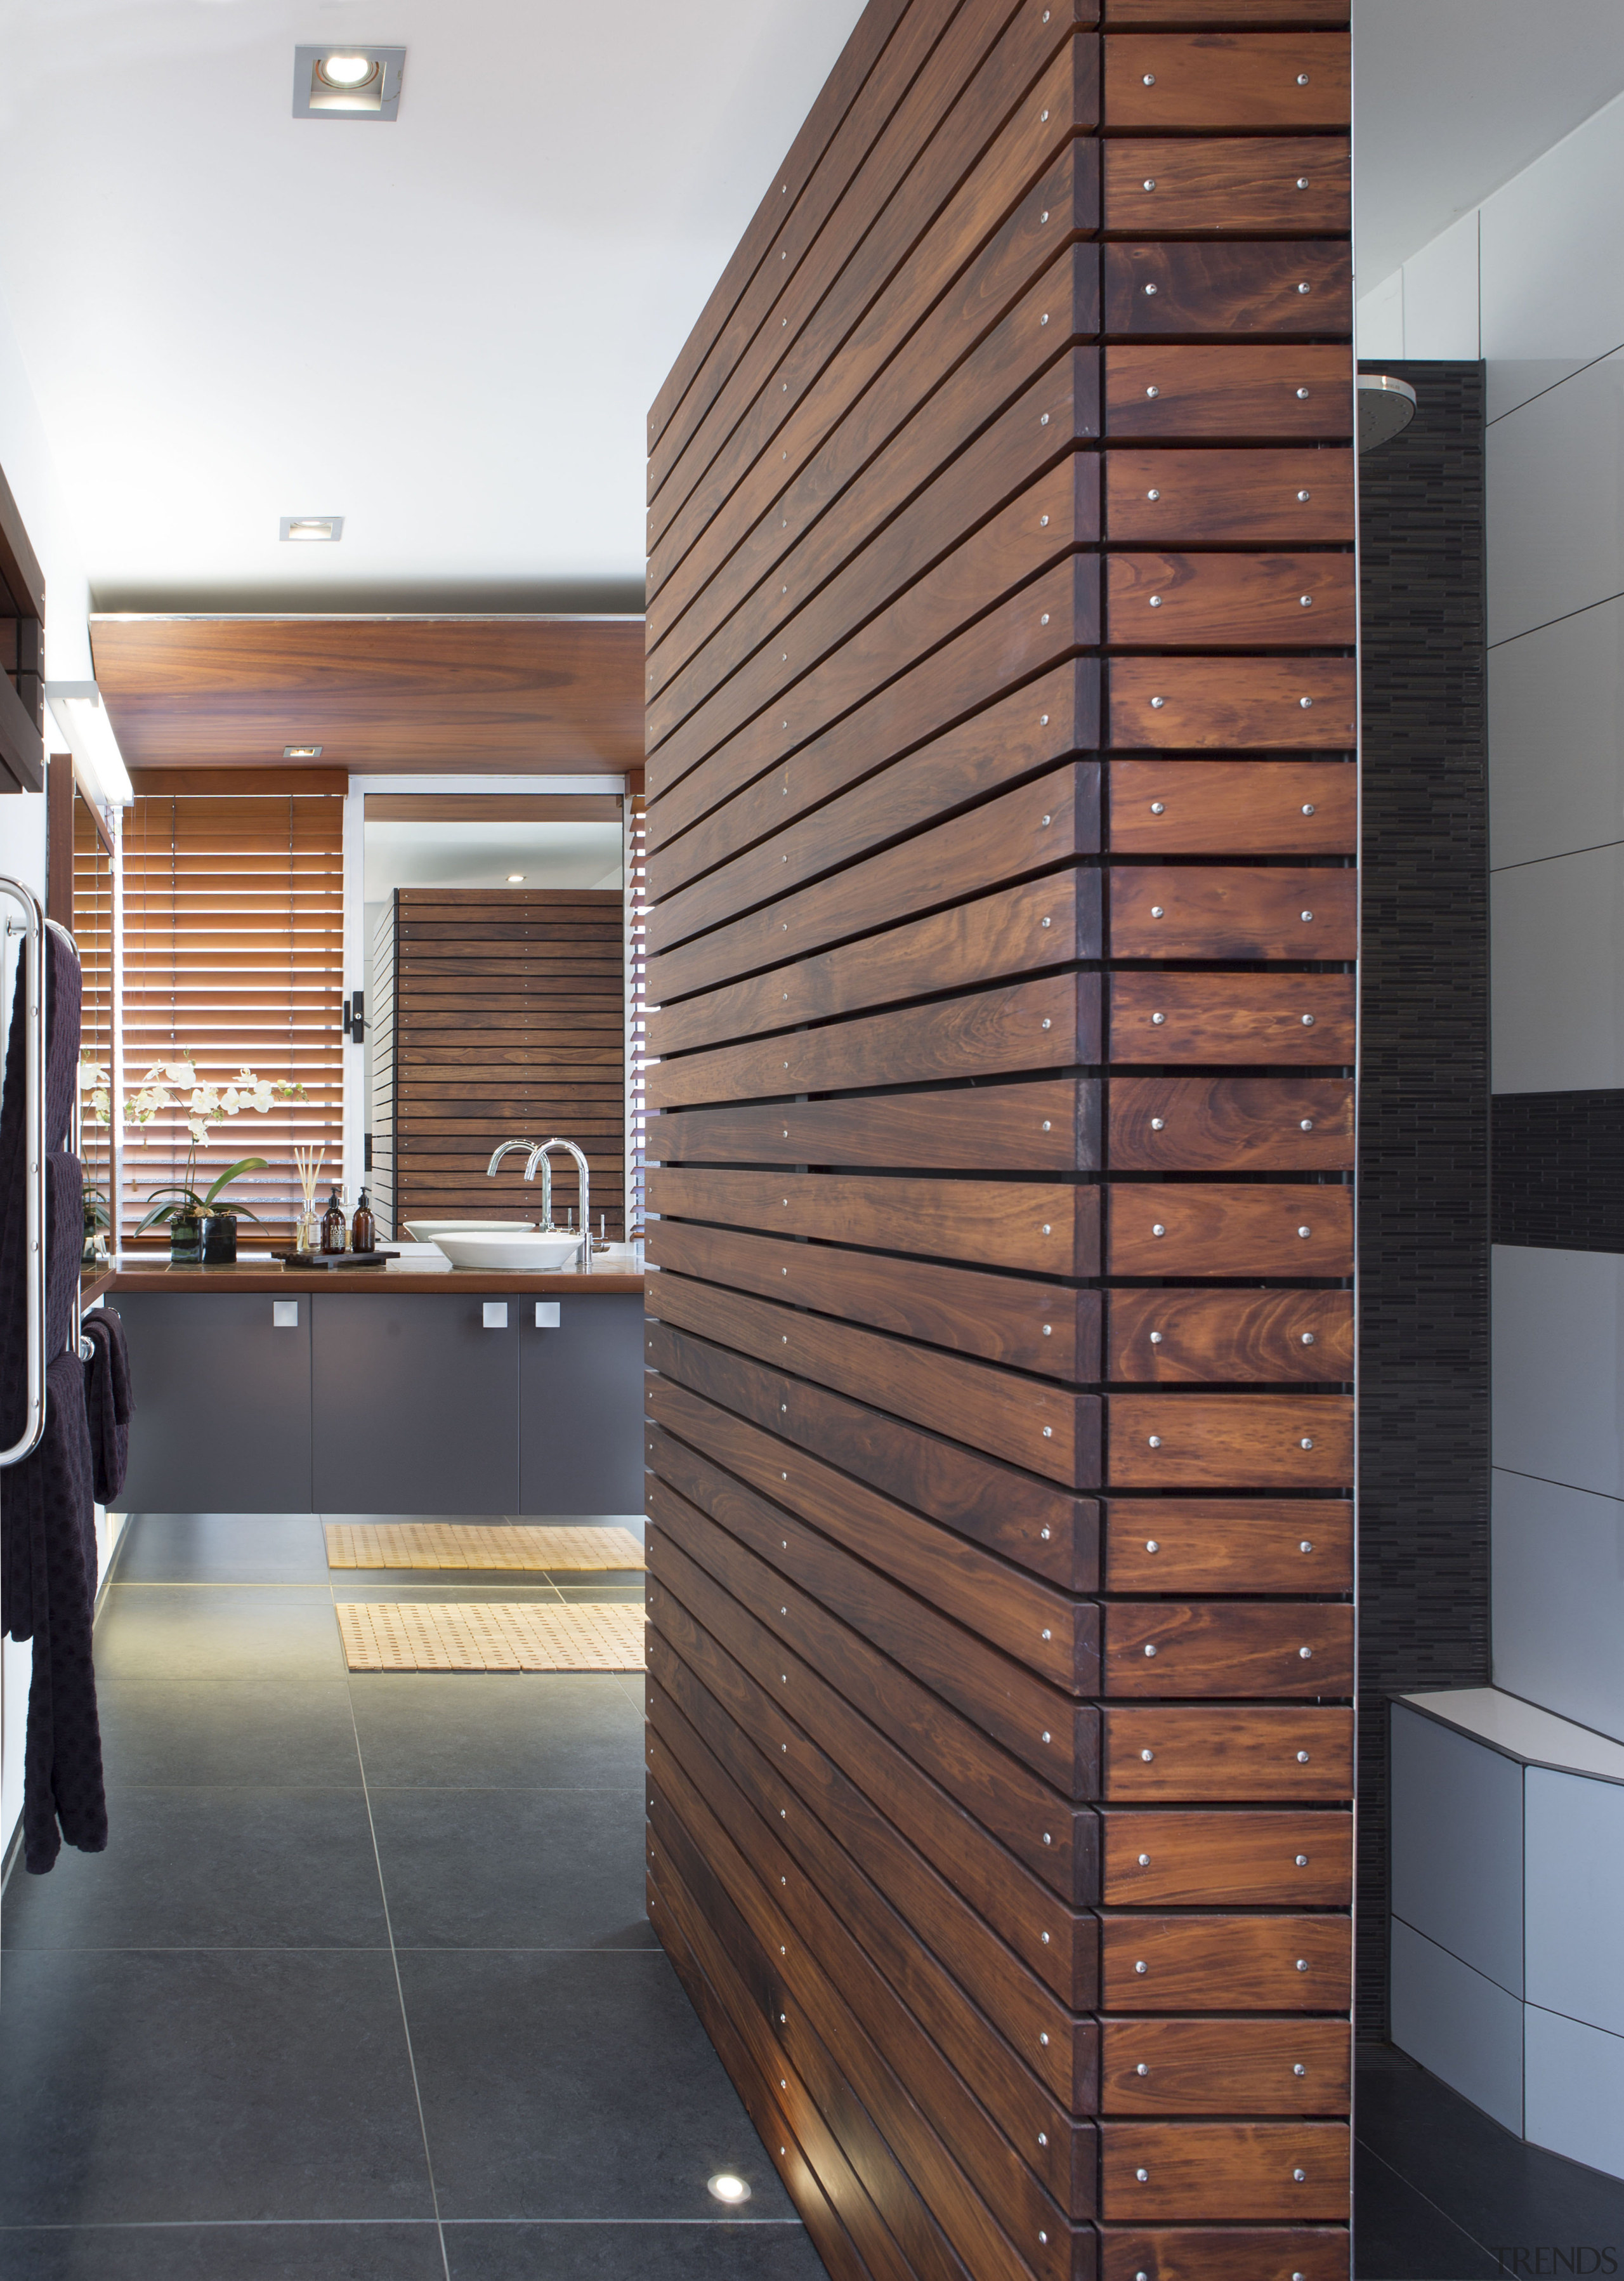 Part of a major bathroom renovation, this showerstall architecture, daylighting, facade, floor, flooring, furniture, hardwood, interior design, wall, wood, wood stain, red